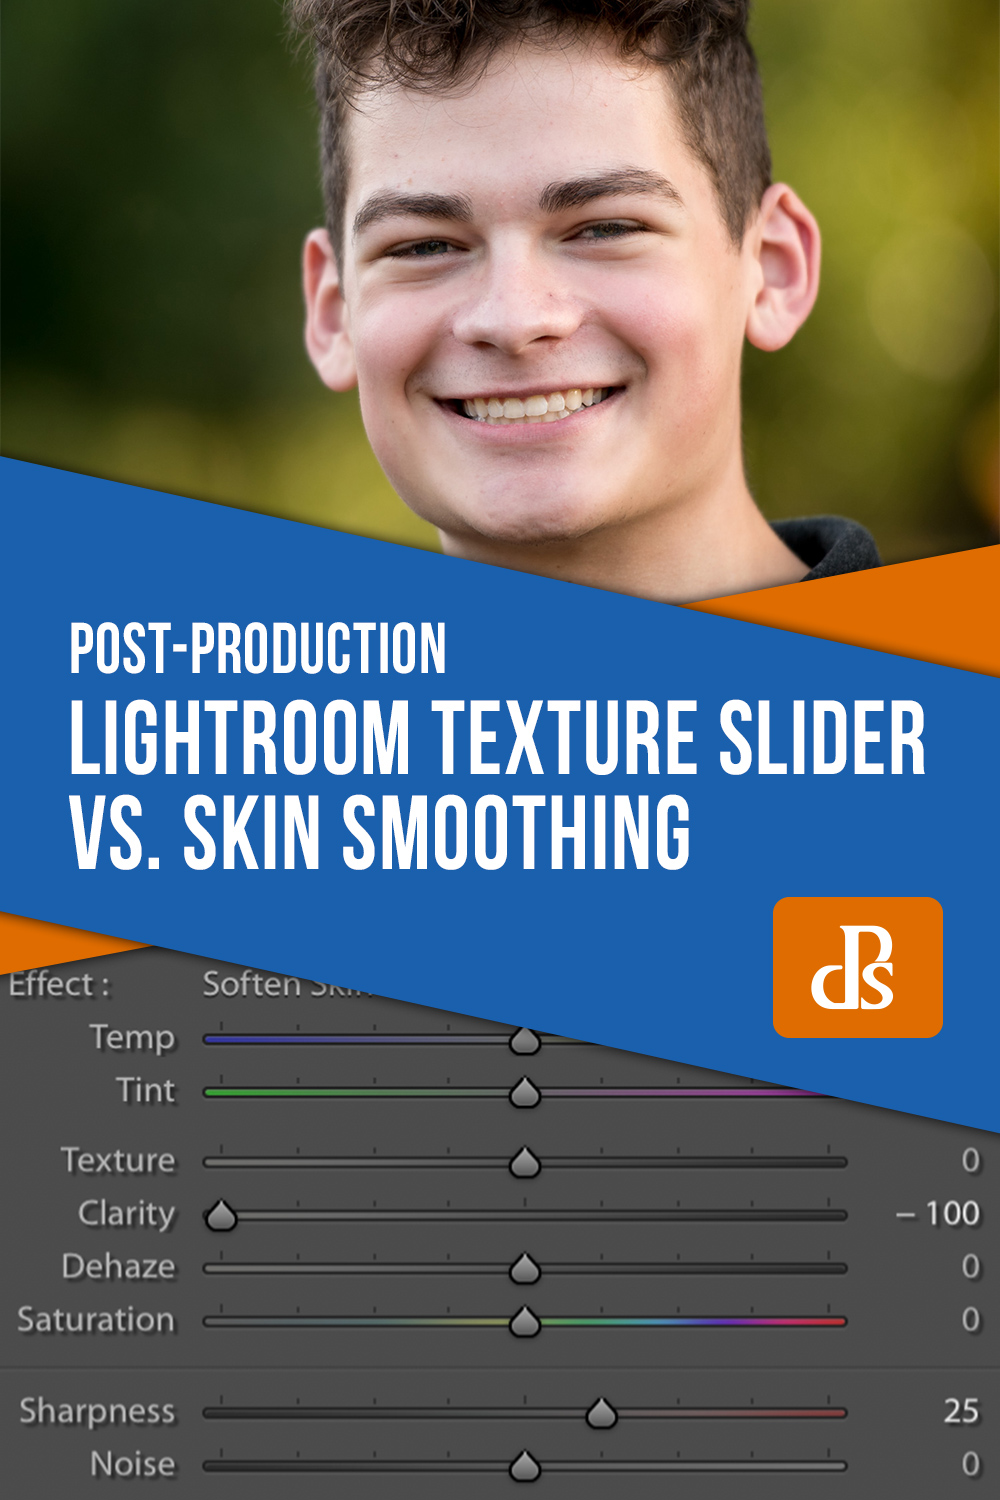 Lightroom Texture Slider vs Skin Smoothing